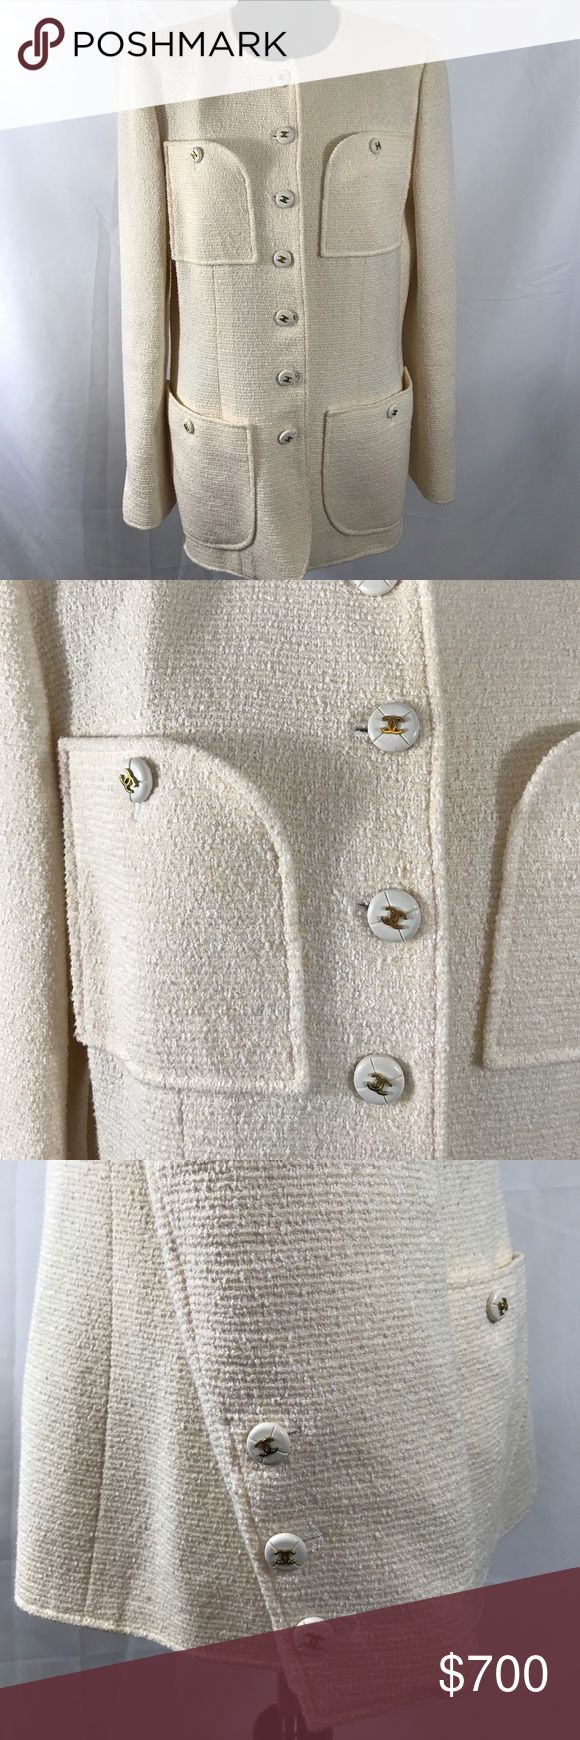 Mint condition CHANEL BOUTIQUE Jacket This French made original is FR 44/ US 12 or Medium/Large.  The fabric is made of 58% Wool, 27% Cotton, and 15% Nylon.  The lining is 100% Silk.  All the buttons are so craftfully designed.  And I love the four pockets on this jacket.  It is a cream color. CHANEL Jackets & Coats